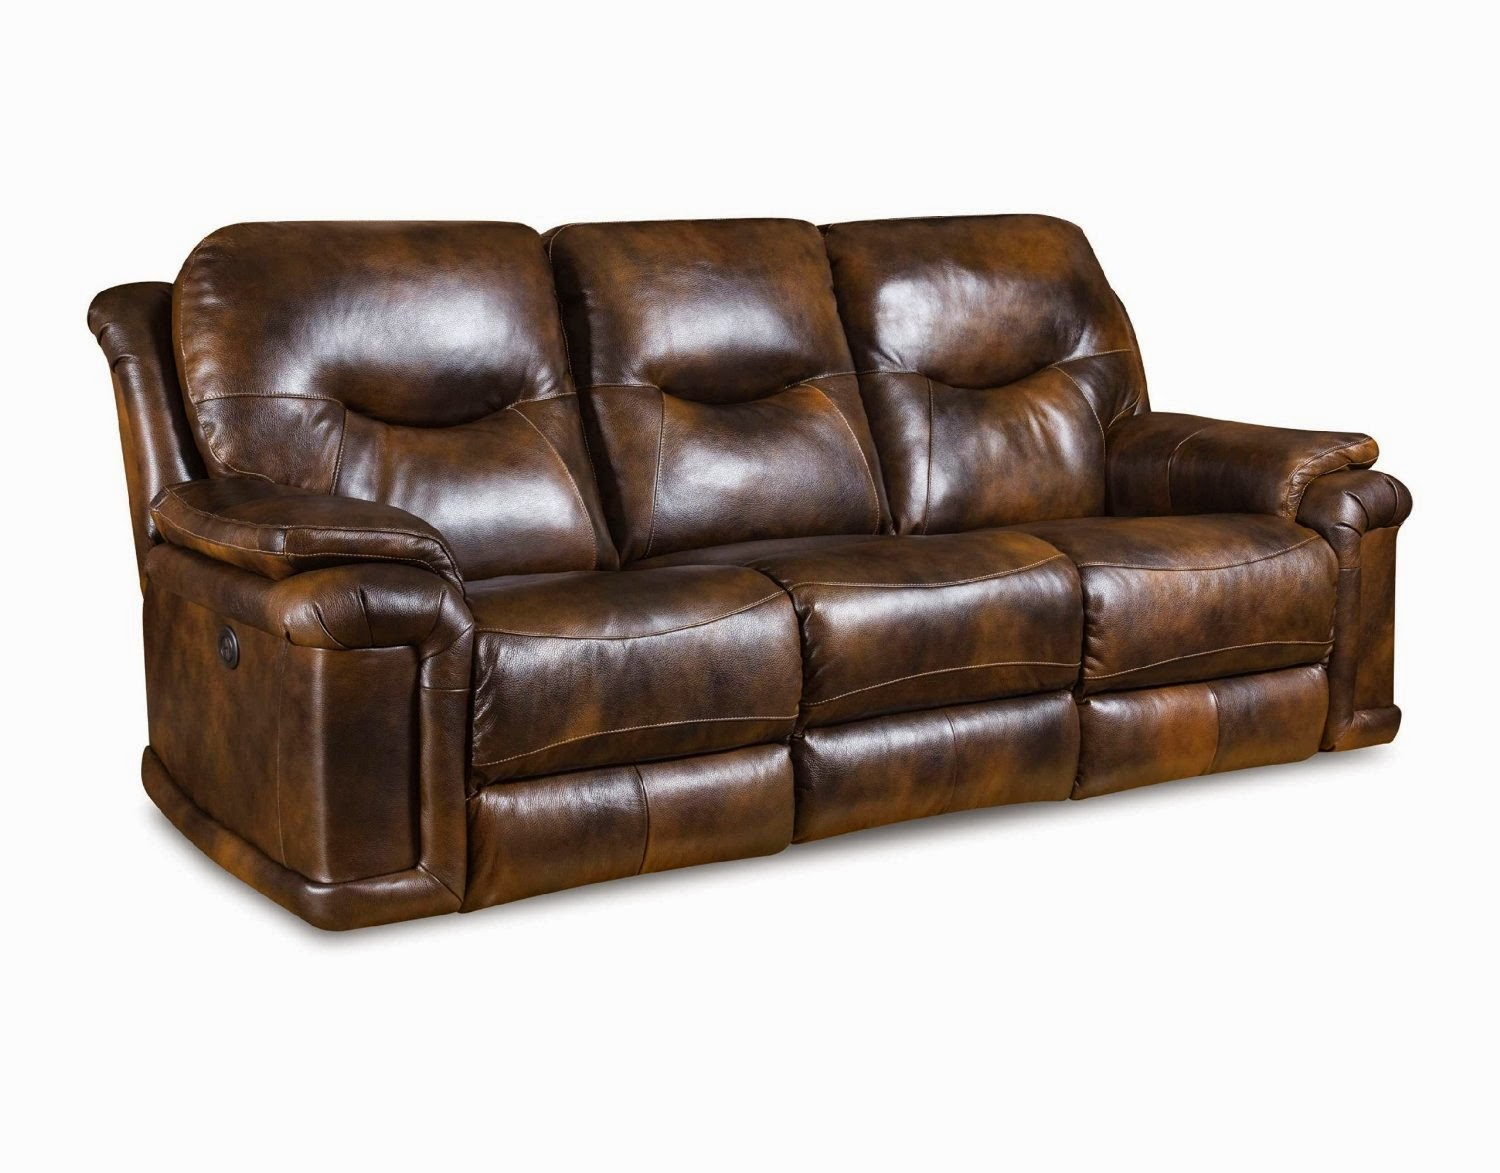 Double Recliner Chairs Chair Cover And Sash Hire Bristol The Best Home Furnishings Reclining Sofa Reviews Southern